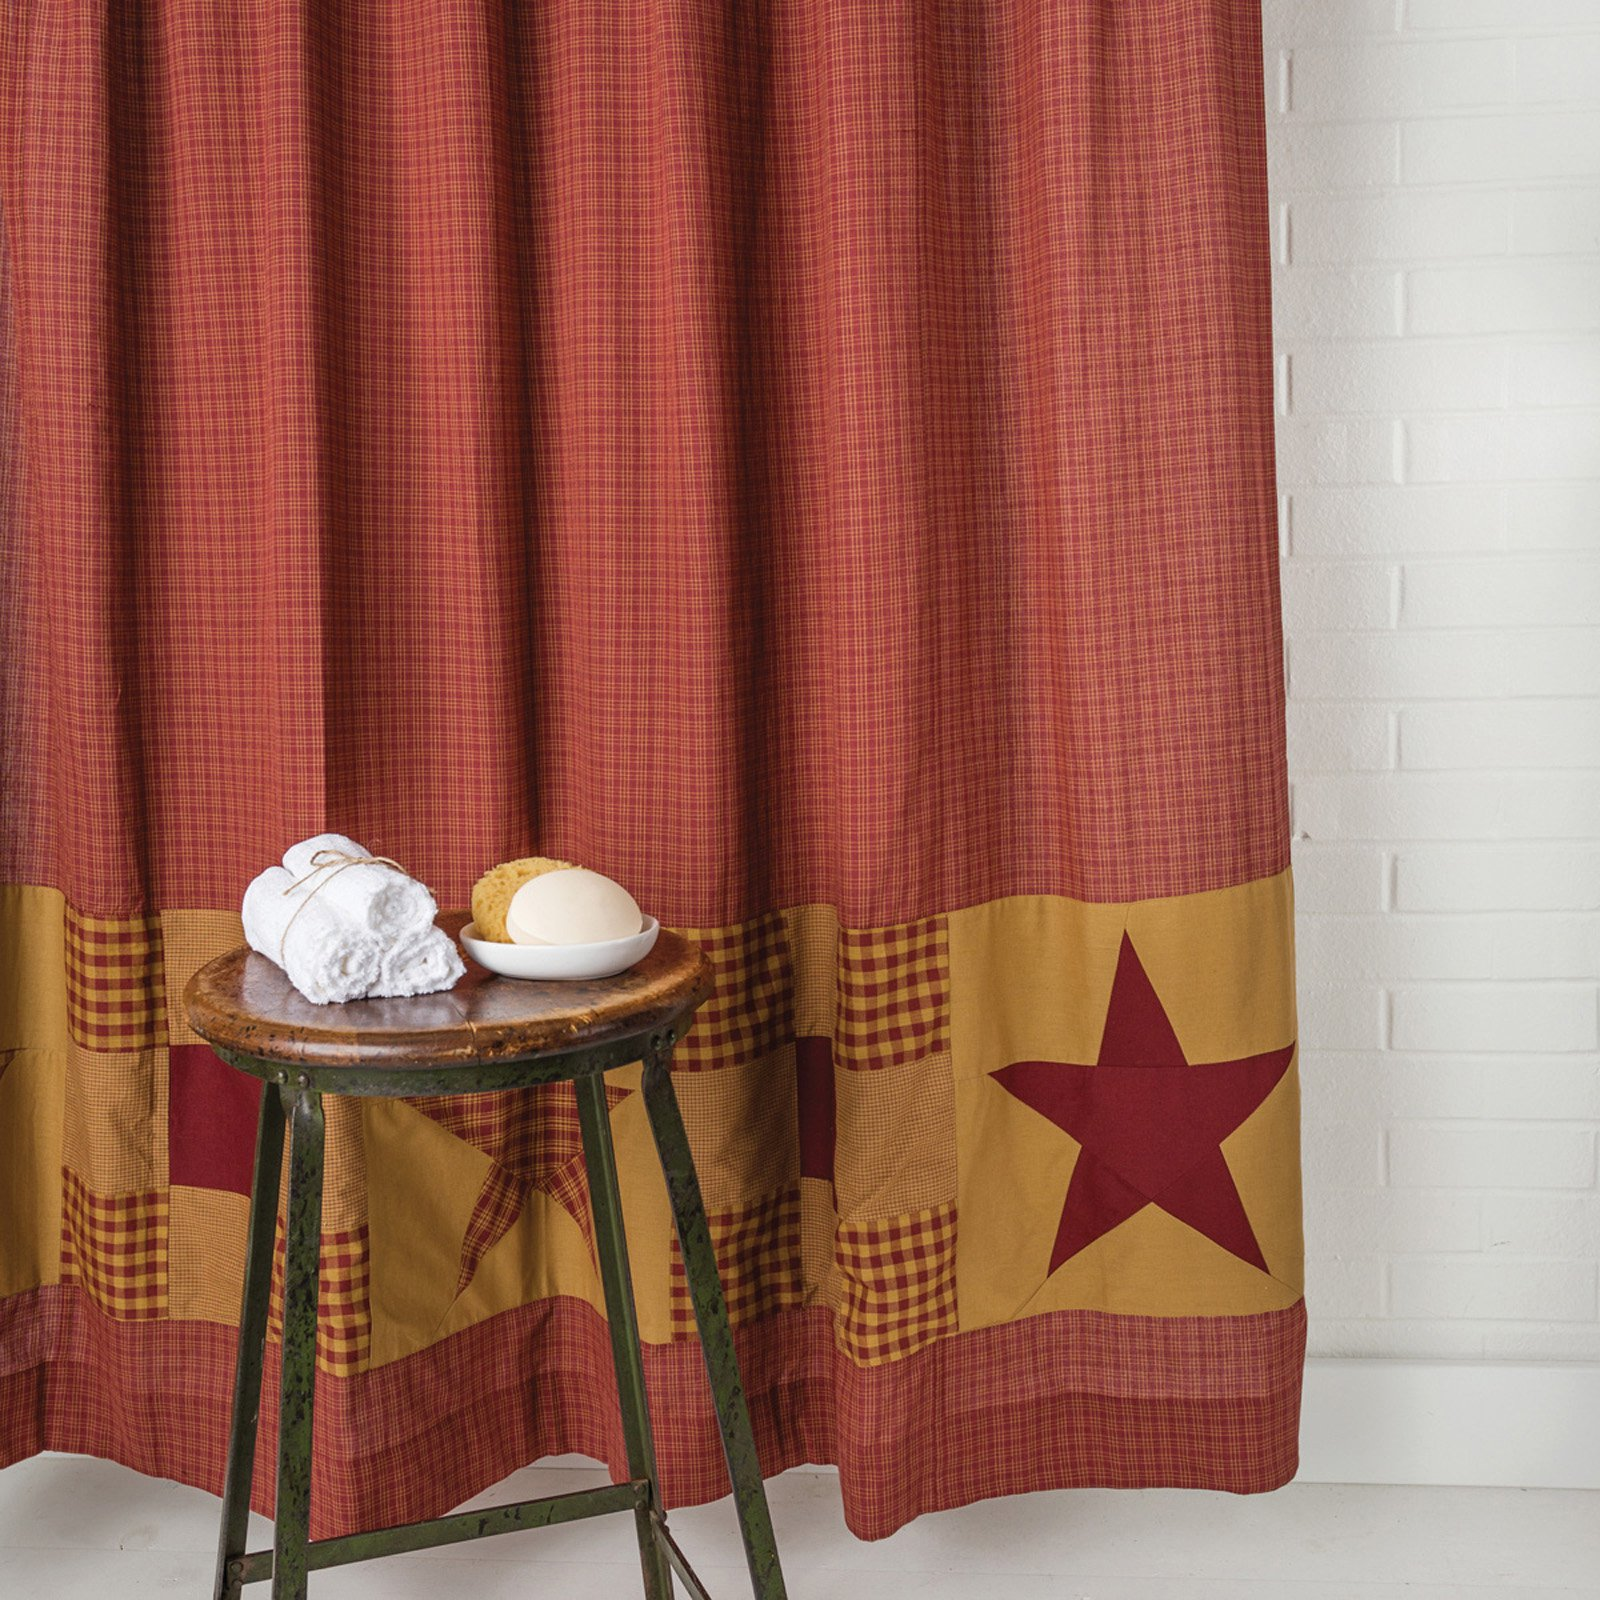 VHC Ninepatch Star Shower Curtain with Patchwork Borders